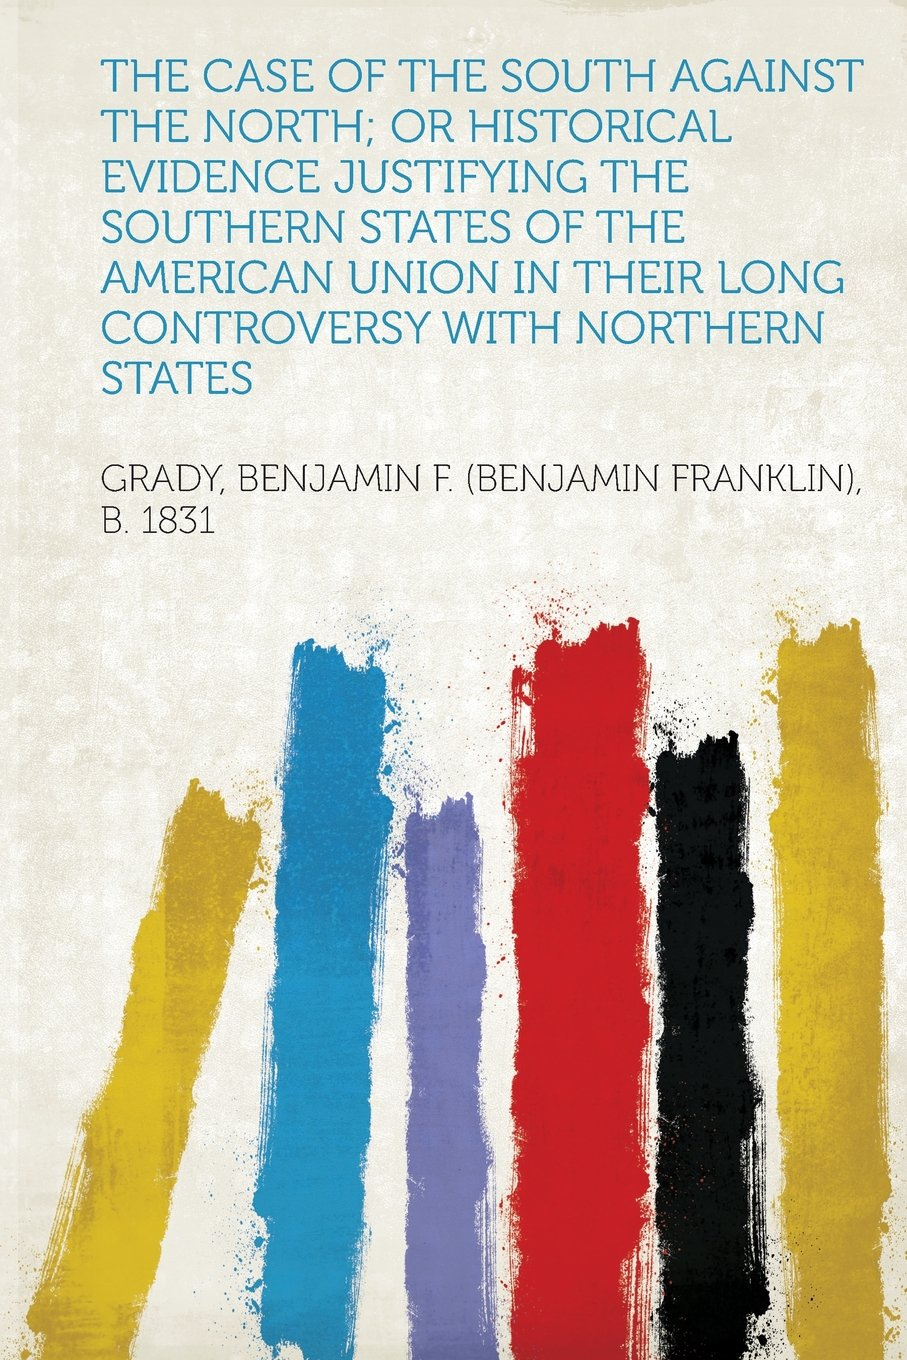 Read Online The Case of the South Against the North; or Historical Evidence Justifying the Southern States of the American Union in Their Long Controversy With Northern States PDF